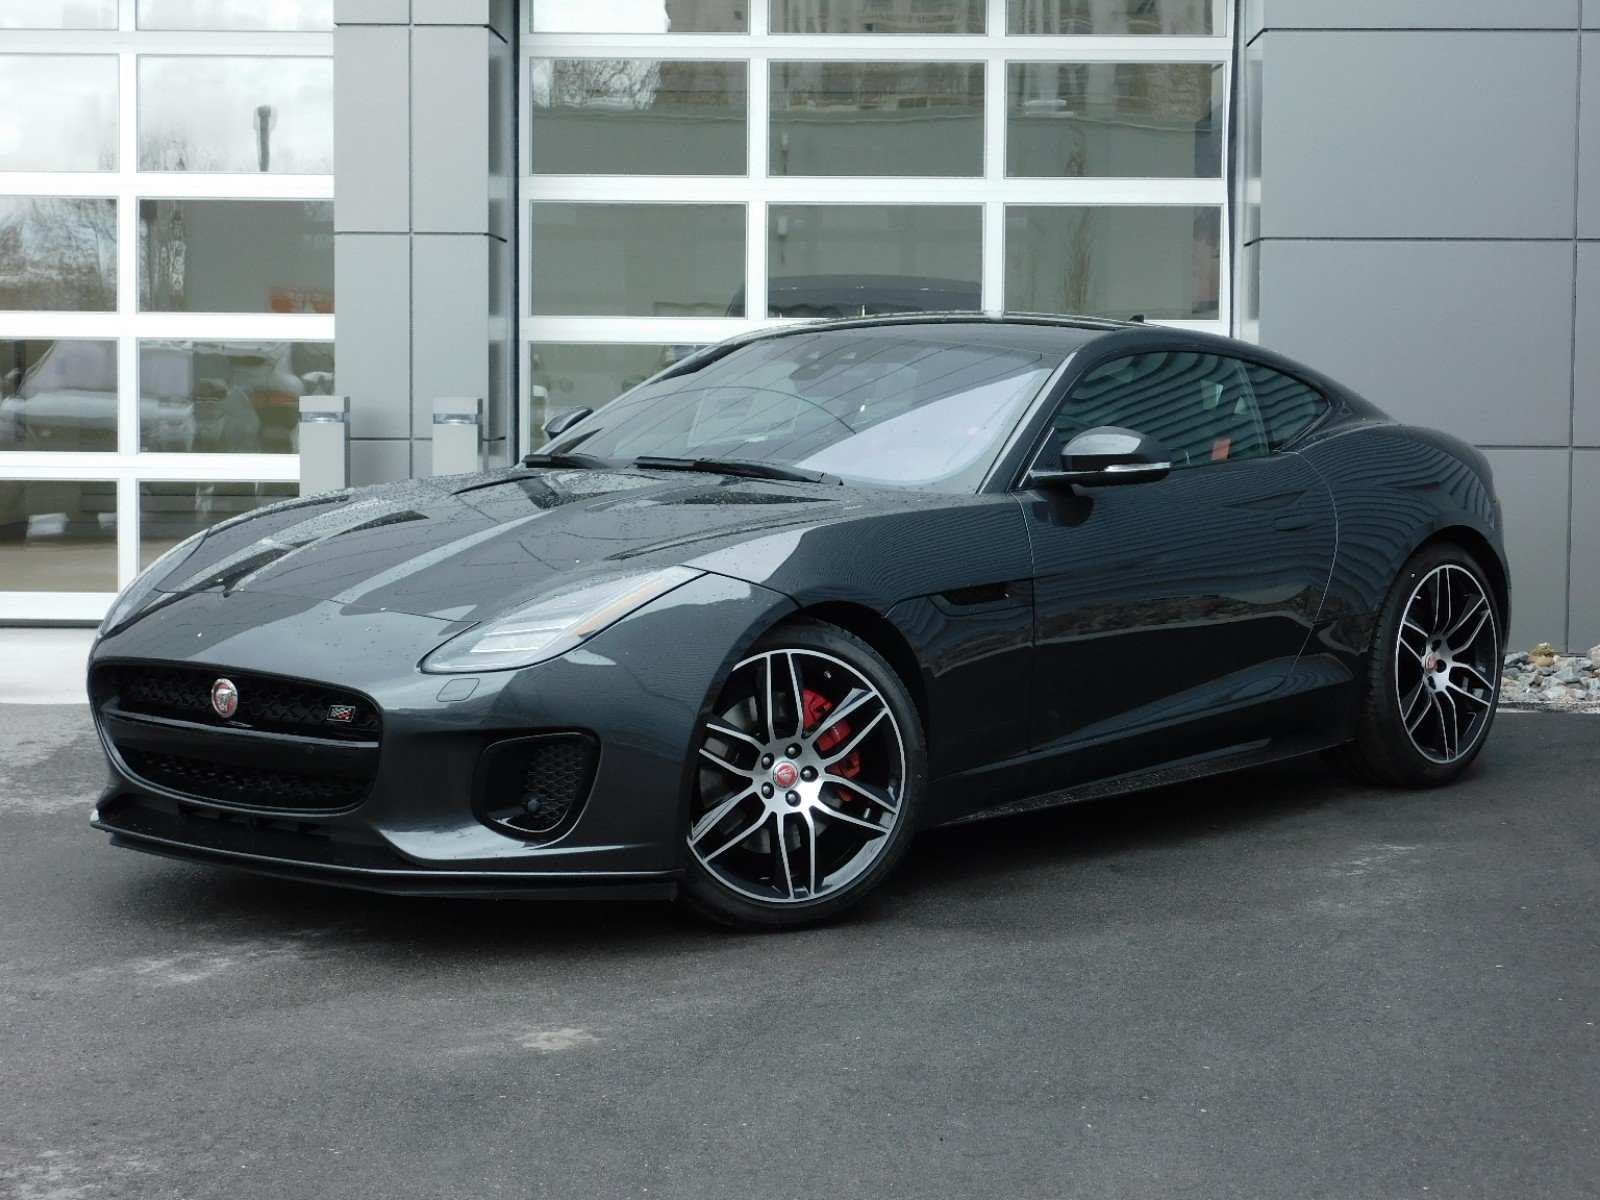 95 The 2020 Jaguar F Type Price